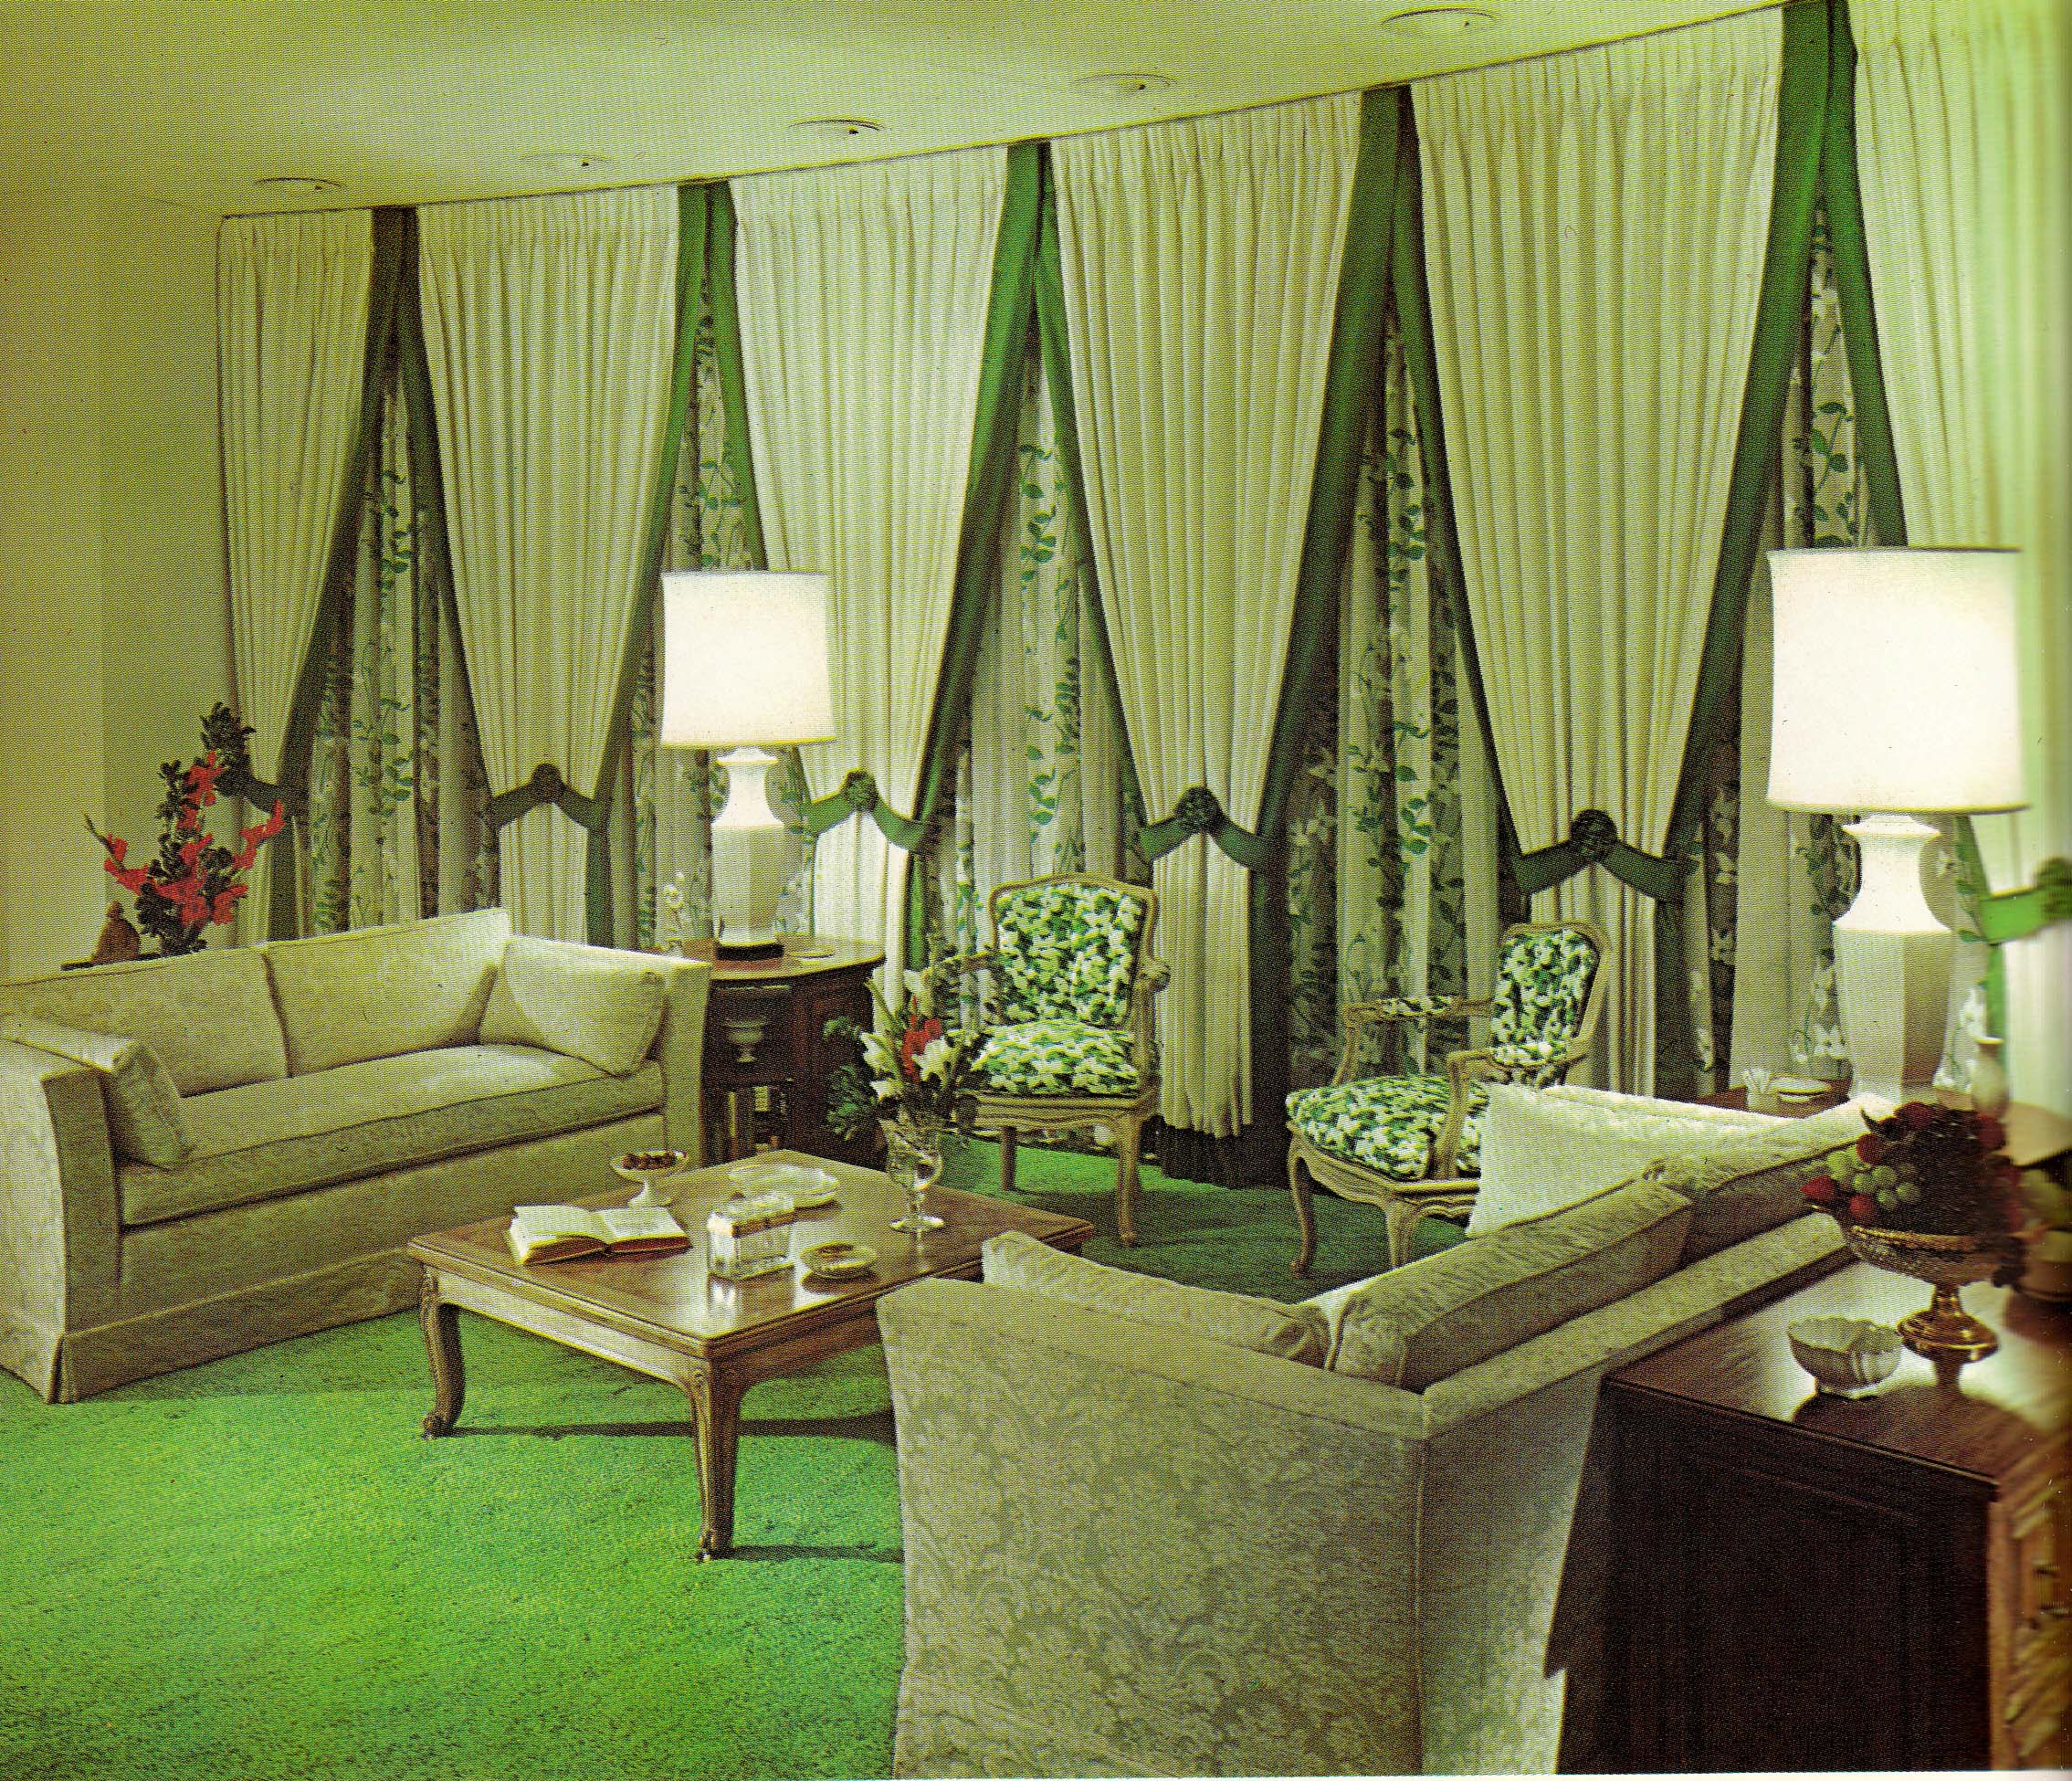 Home '65: A Groovy Look at Mid-Sixties Interior Décor ...